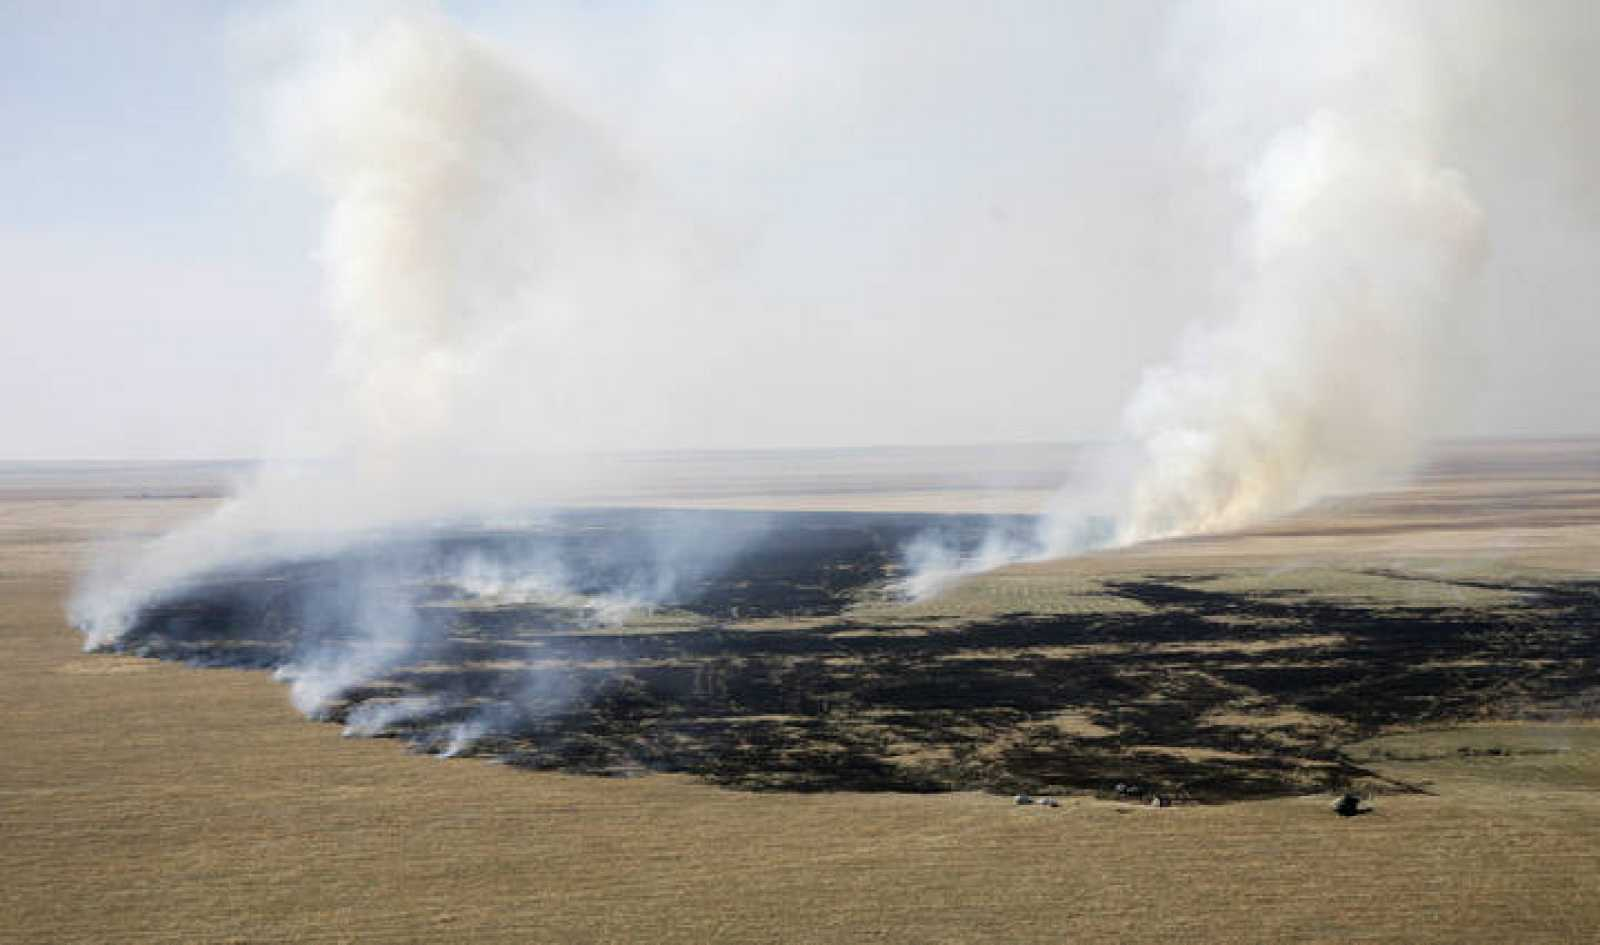 Smoke rises at the area where the Soyuz capsule landed in northern Kazakhstan